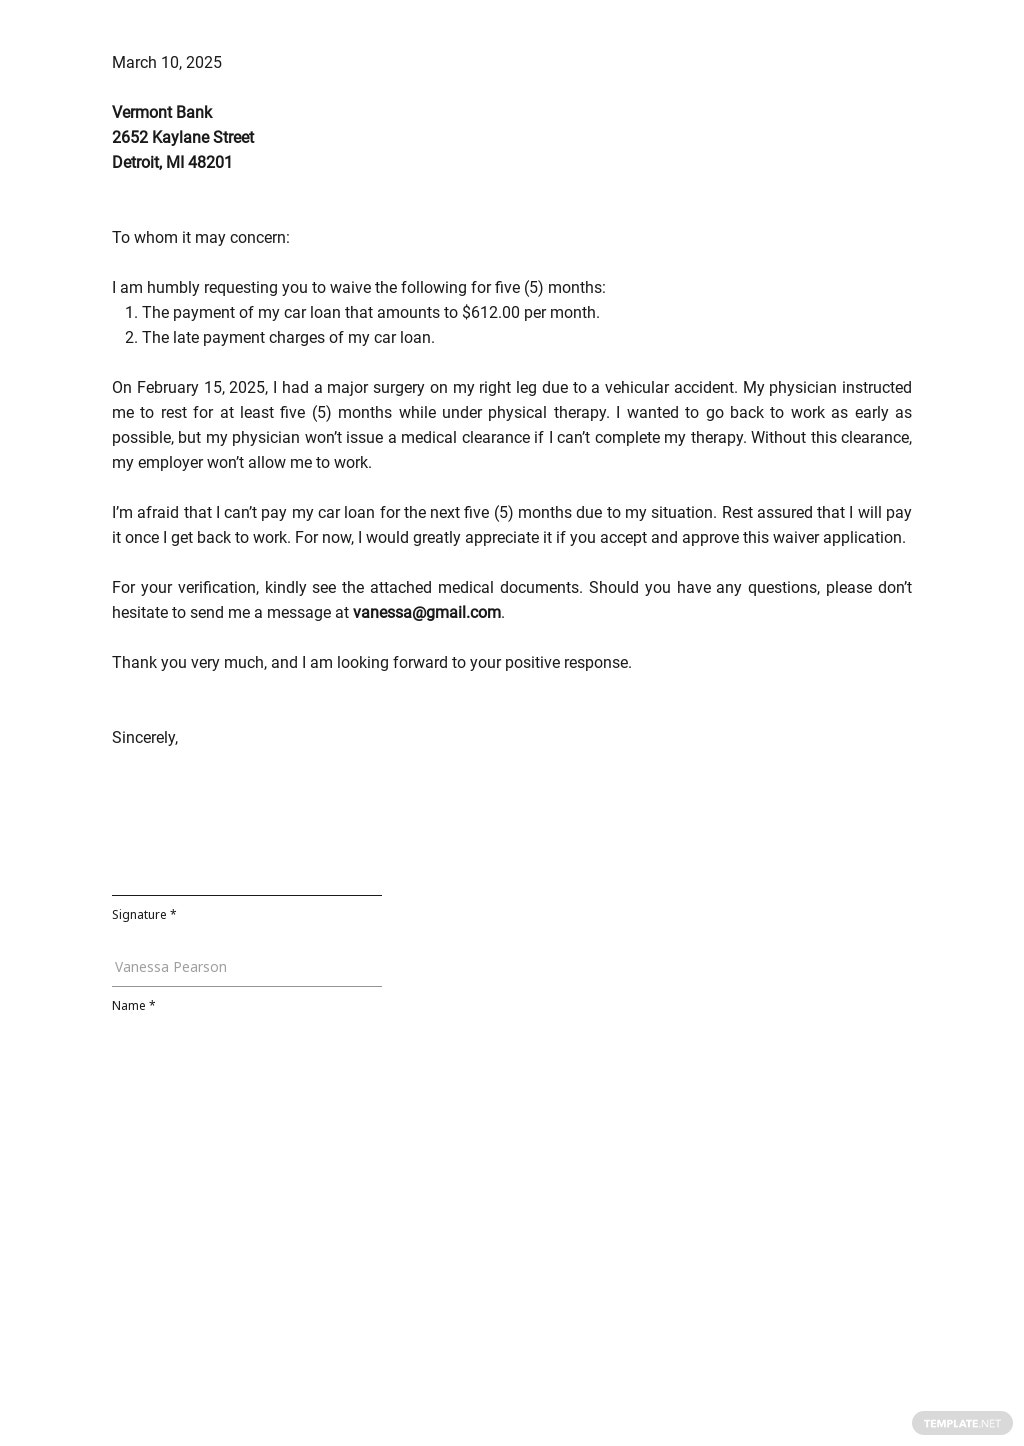 Waiver Application Letter Template.jpe